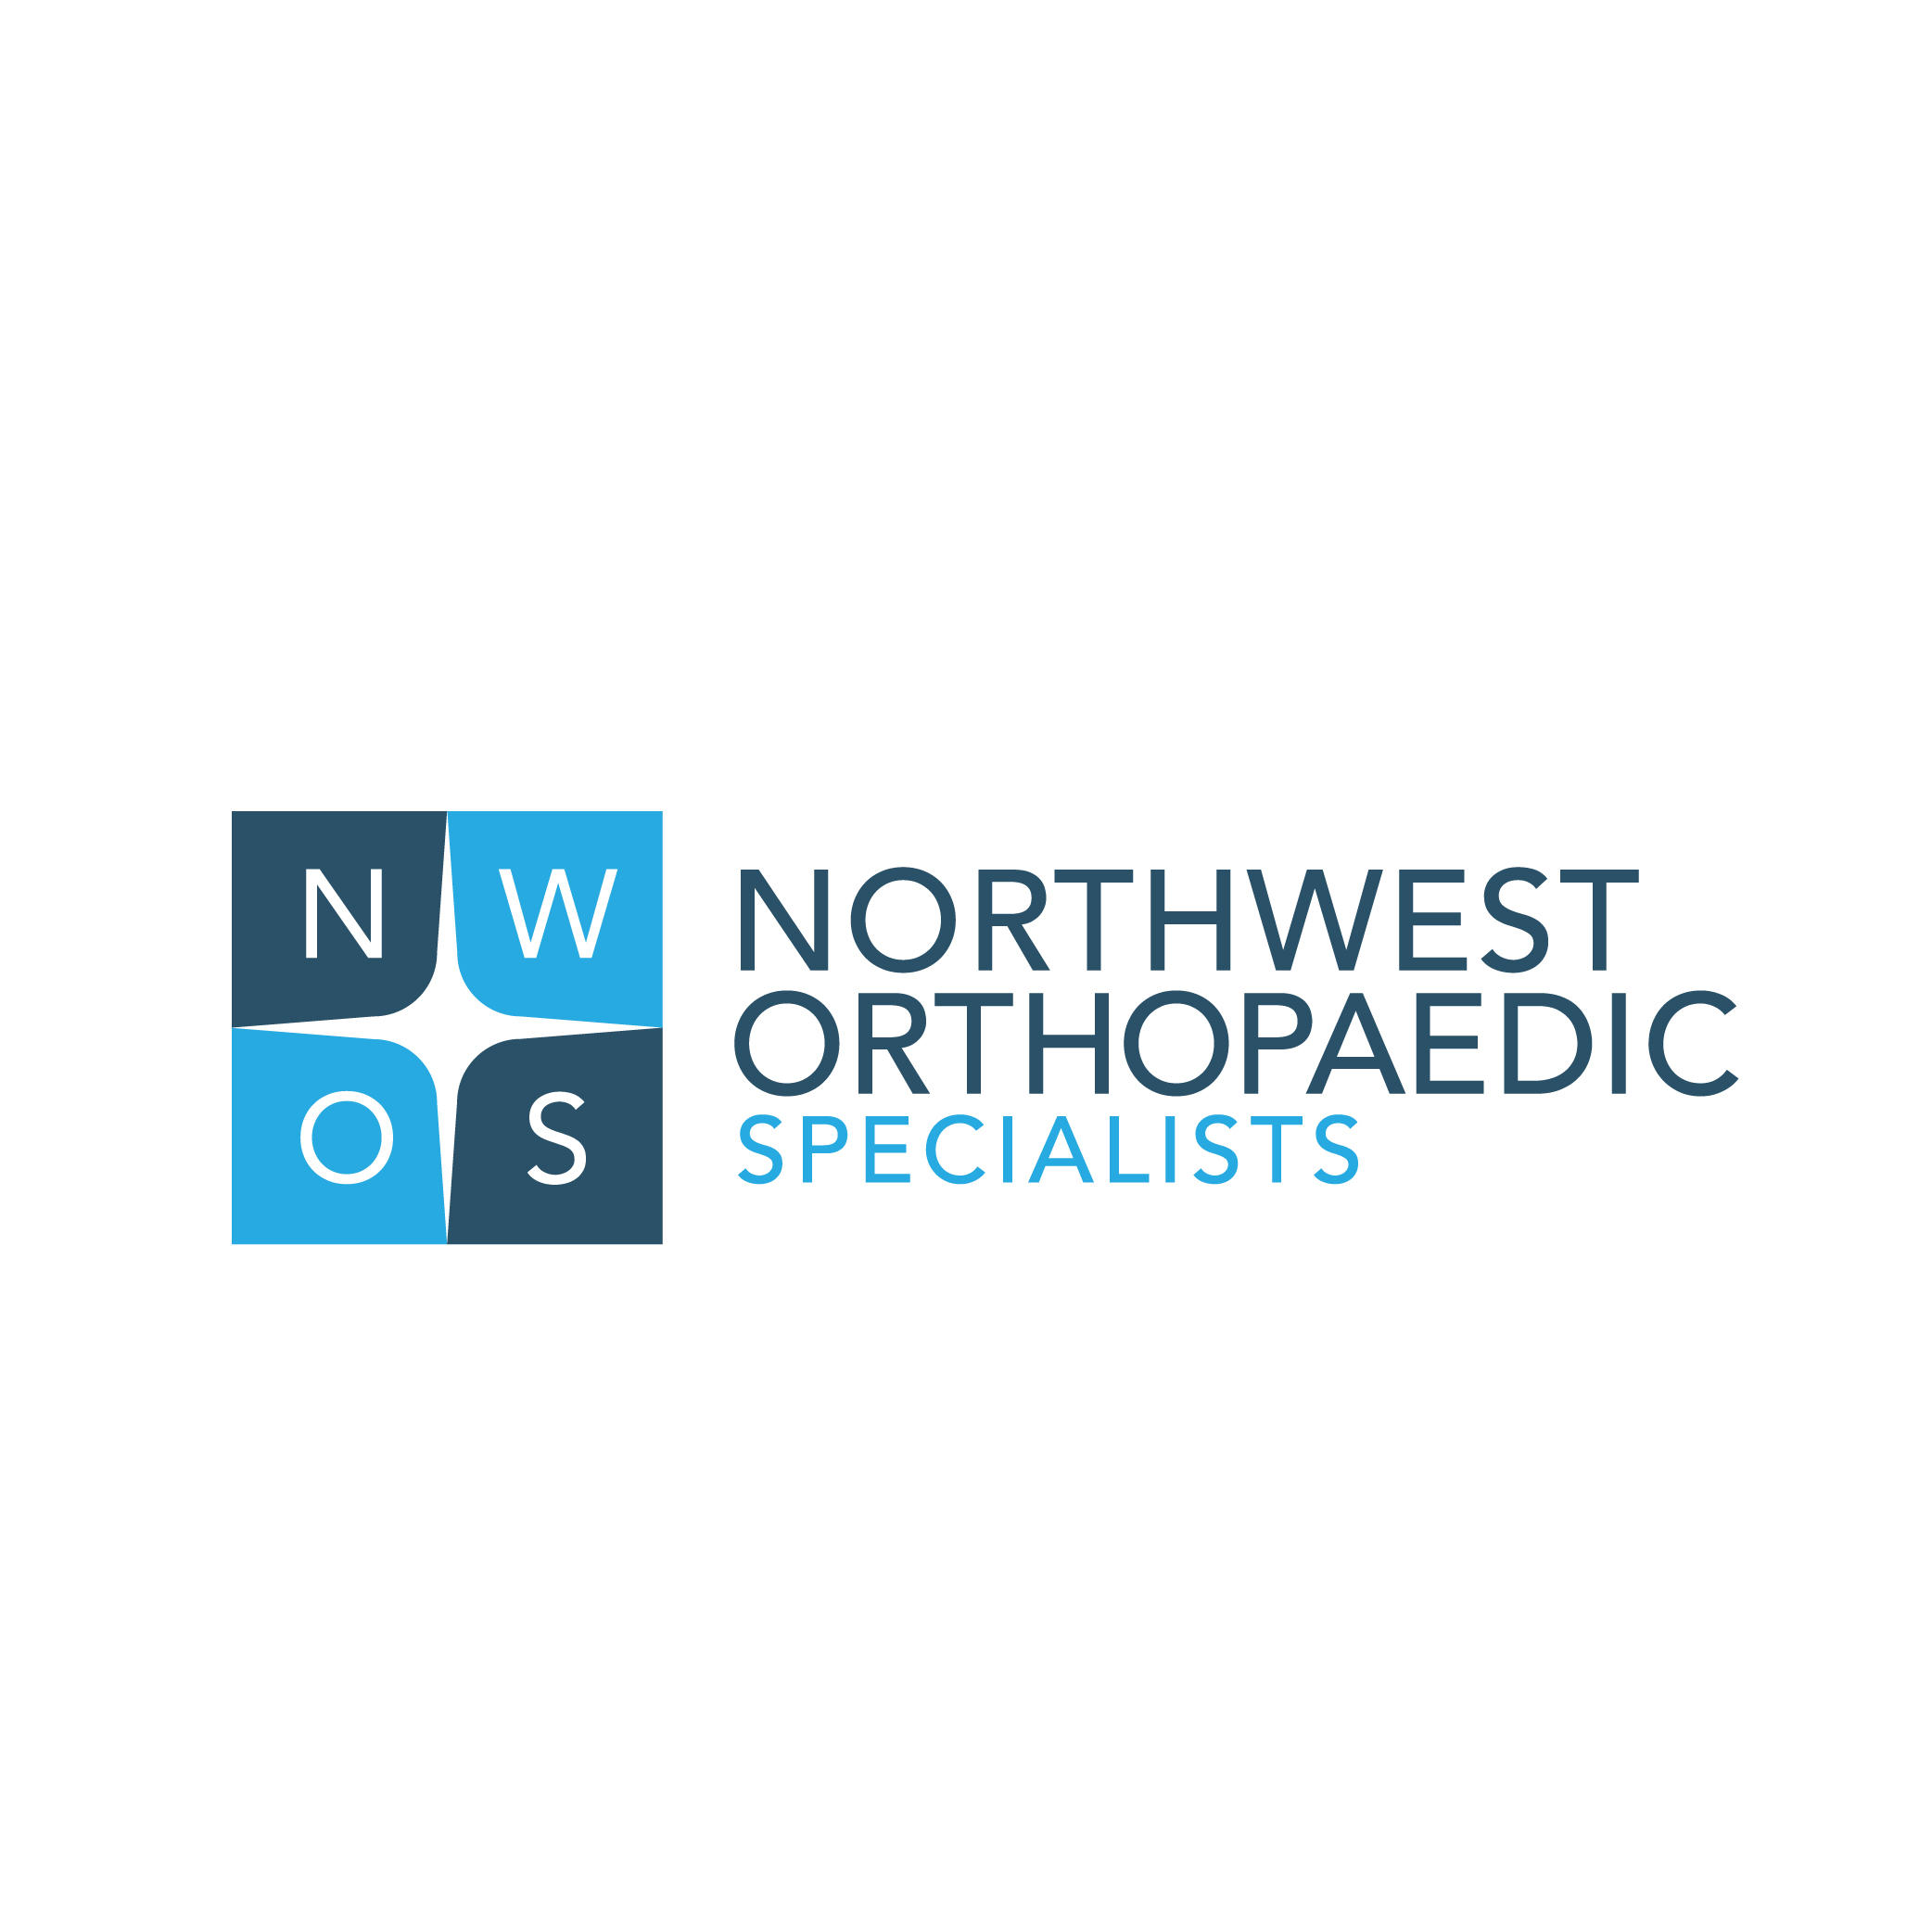 Northwest Orthopaedic Specialists - Downtown and South Spokane image 0